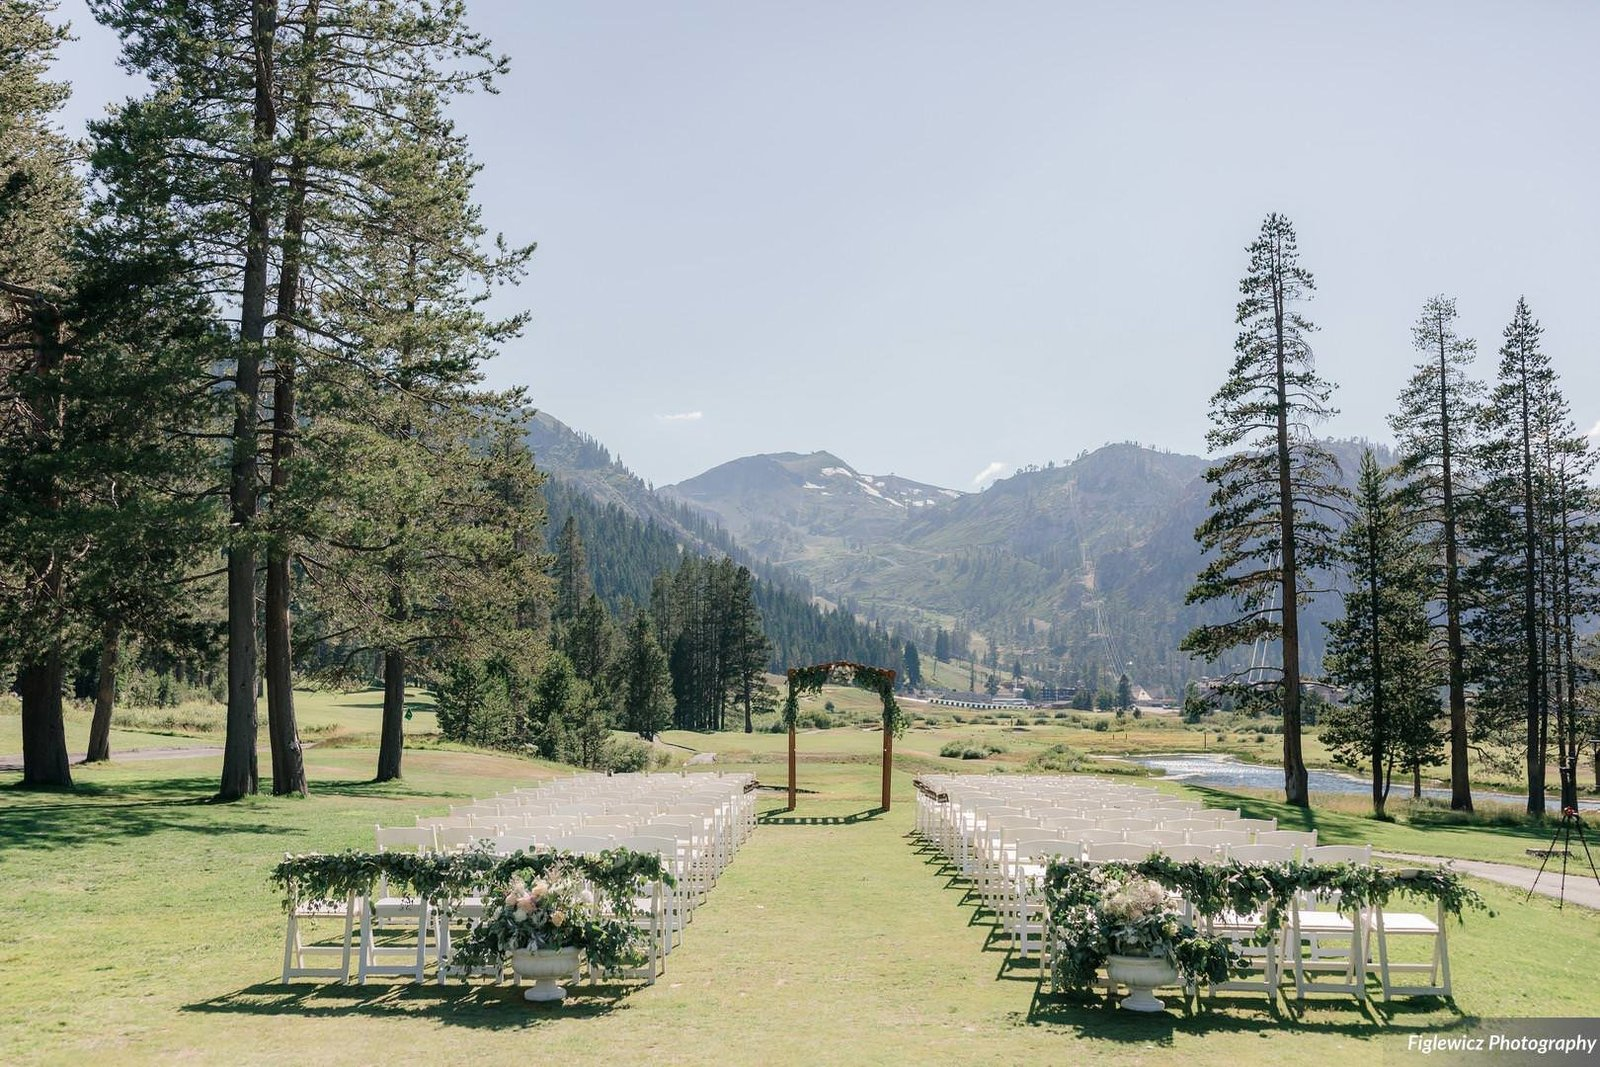 Garden_Tinsley_FiglewiczPhotography_LakeTahoeWeddingSquawValleyCreekTaylorBrendan00075_big